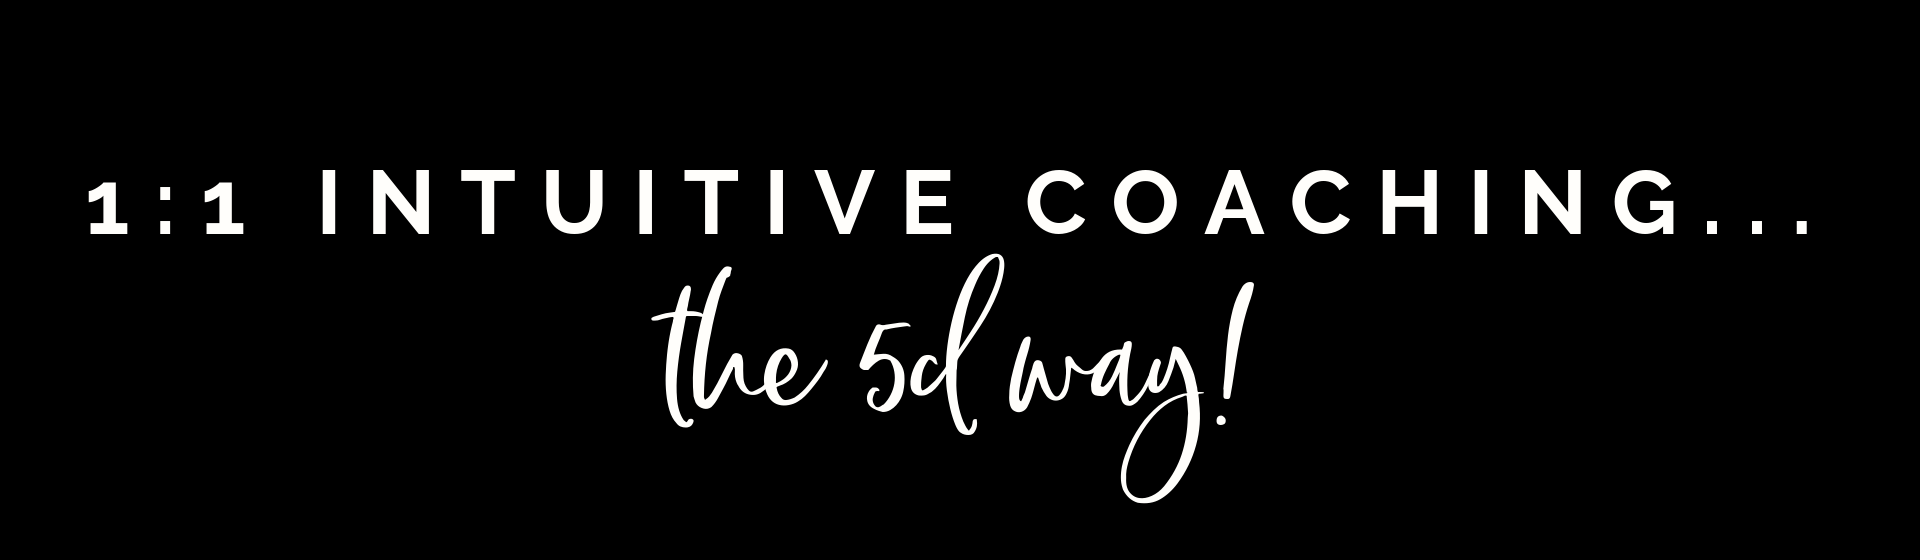 1_1 intuitive coaching - the 5d way!